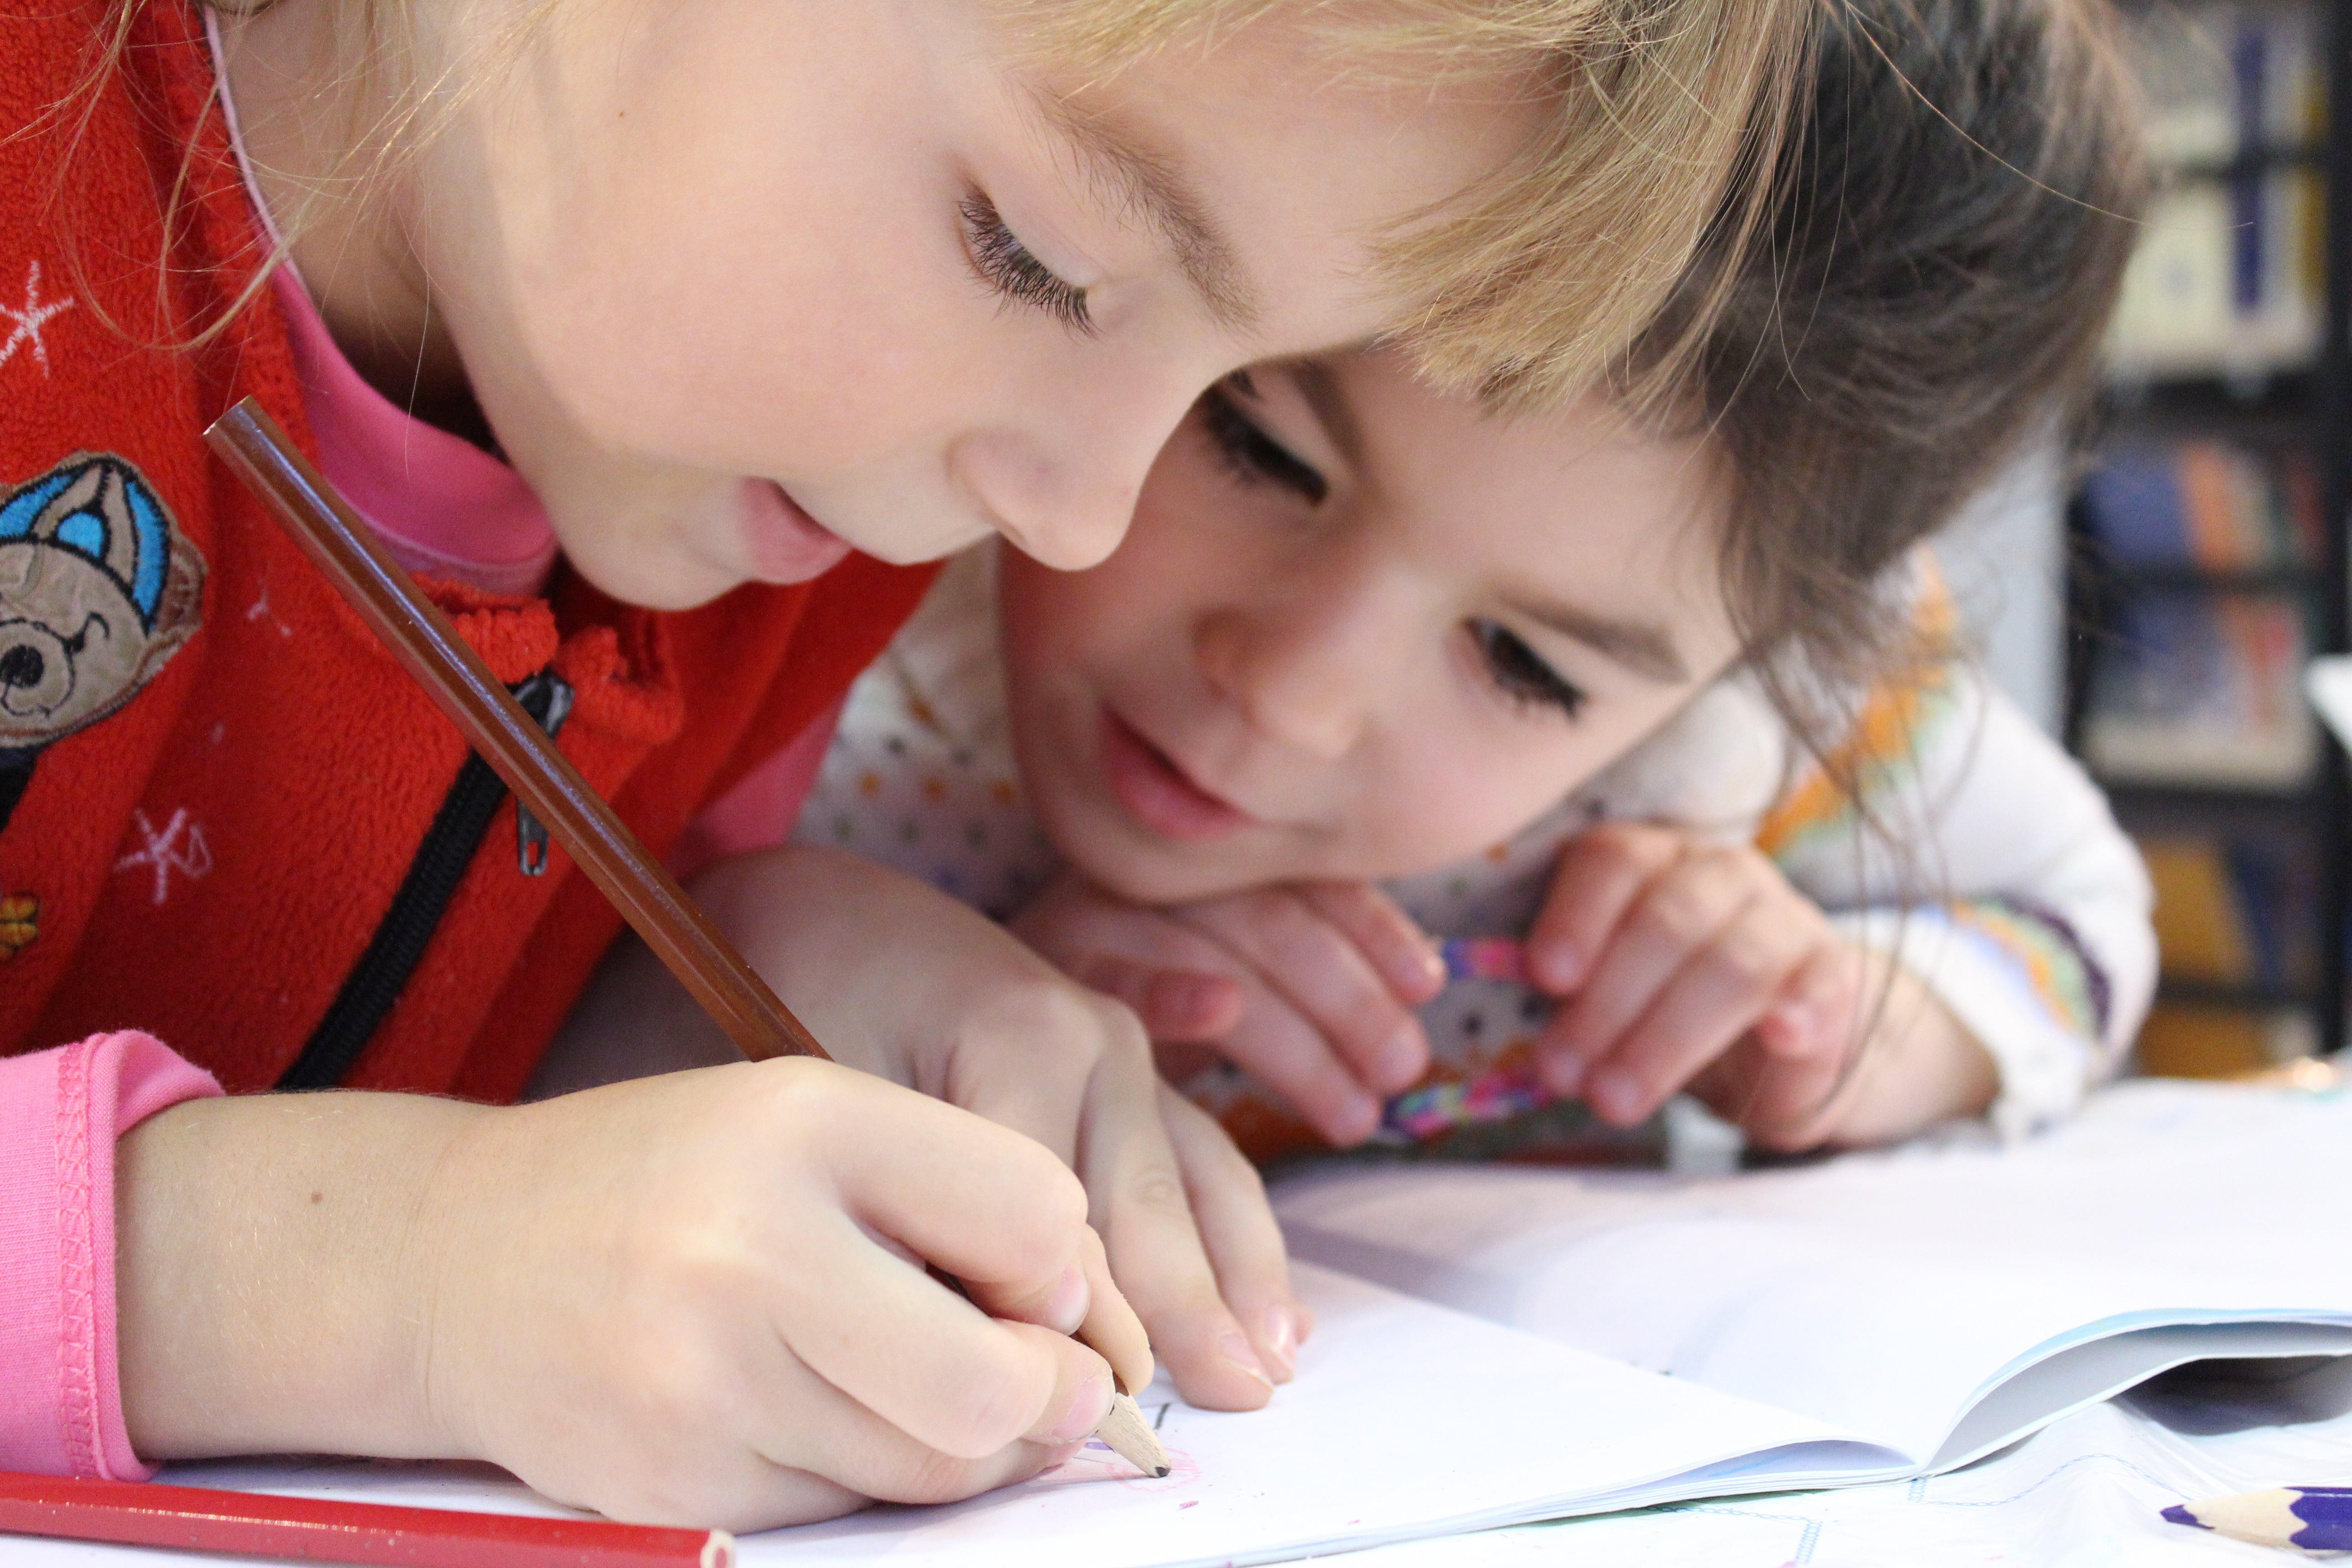 Should Evolution be Taught in Elementary School?